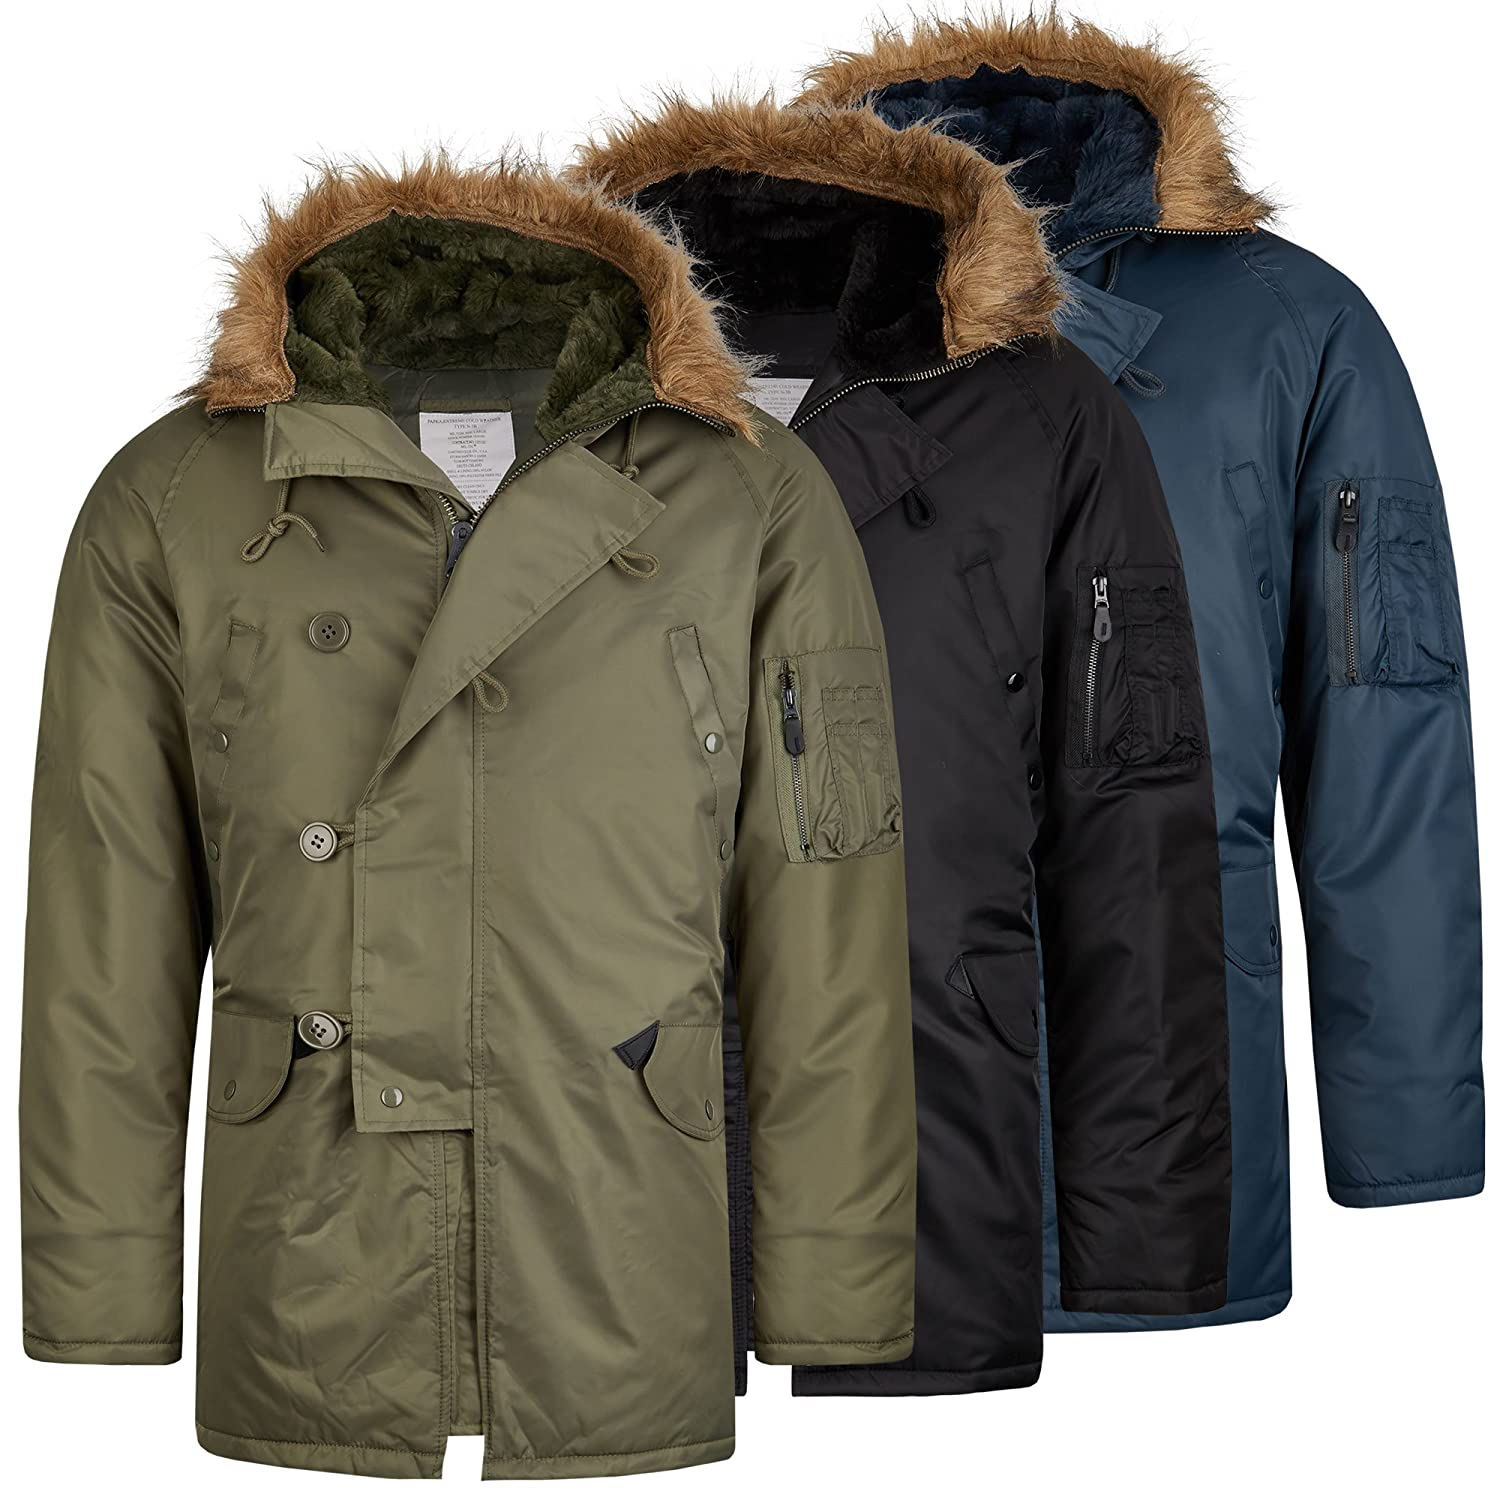 Teesar Flieger Winter Flieger Parka Fliegerjacke Bomber Parka im Bundle mit UD Thinsulate Beanie